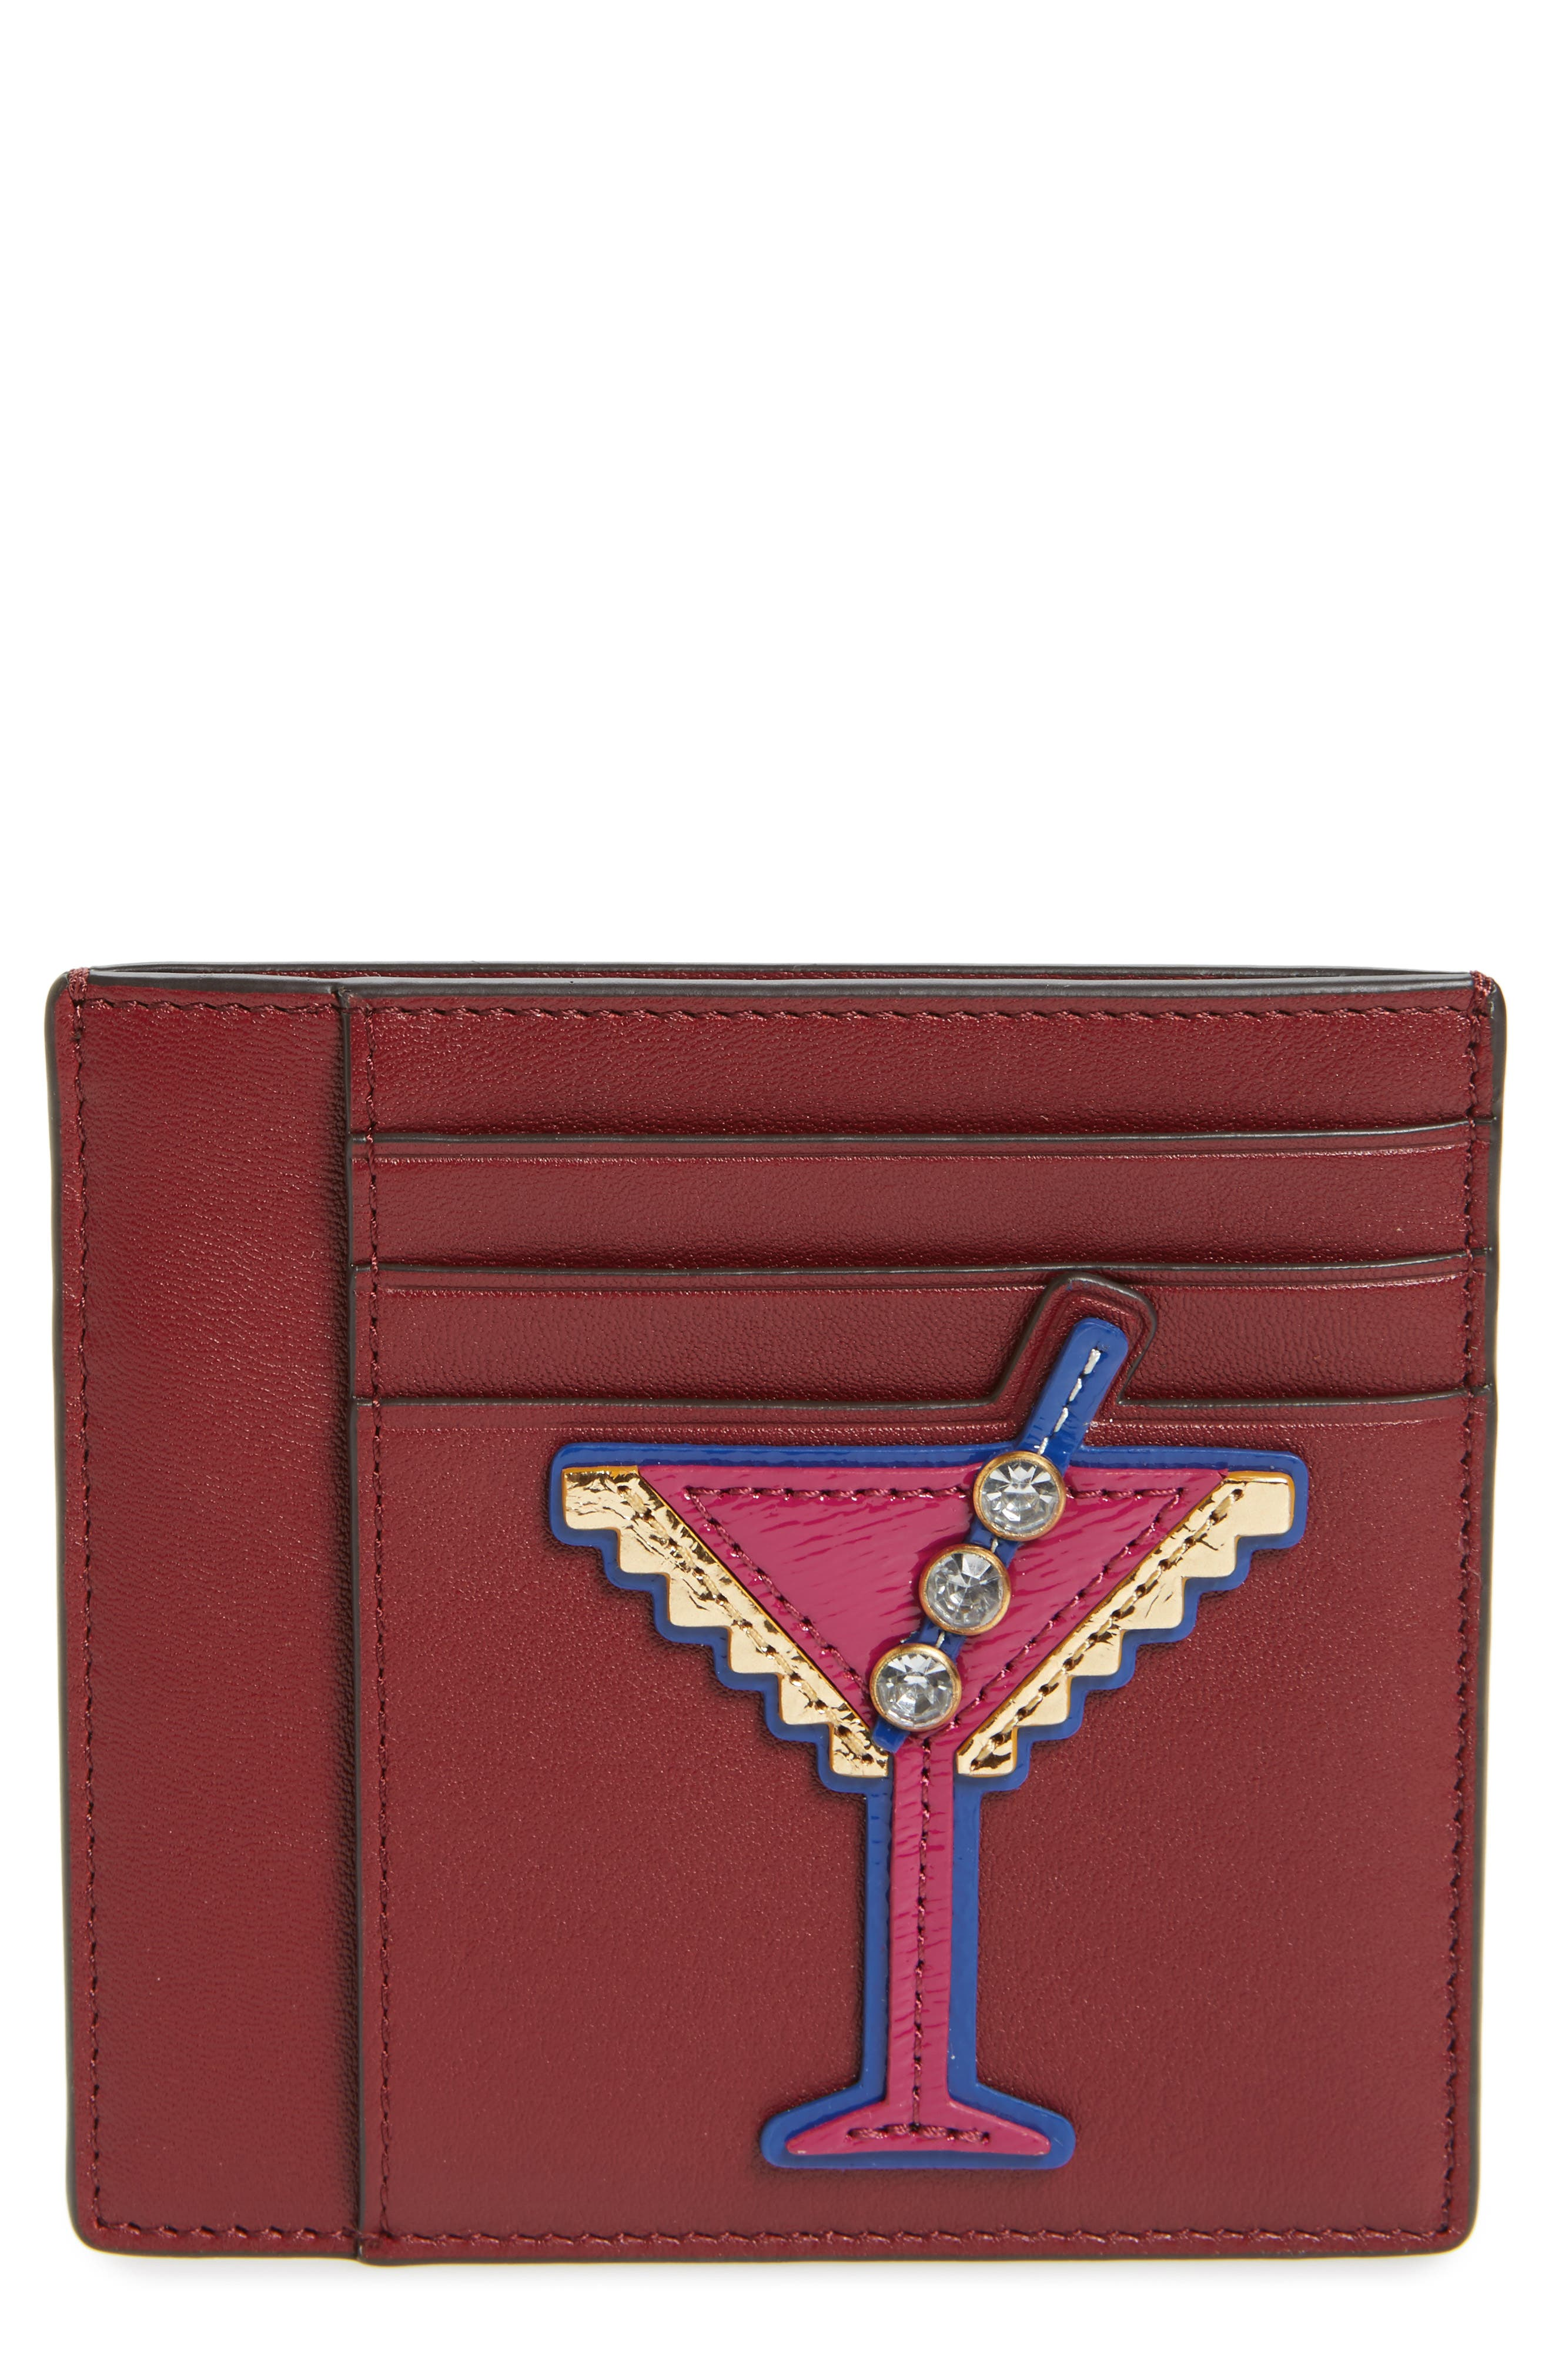 Martini Appliqué Leather Card Case,                             Main thumbnail 1, color,                             Imperial Garnet